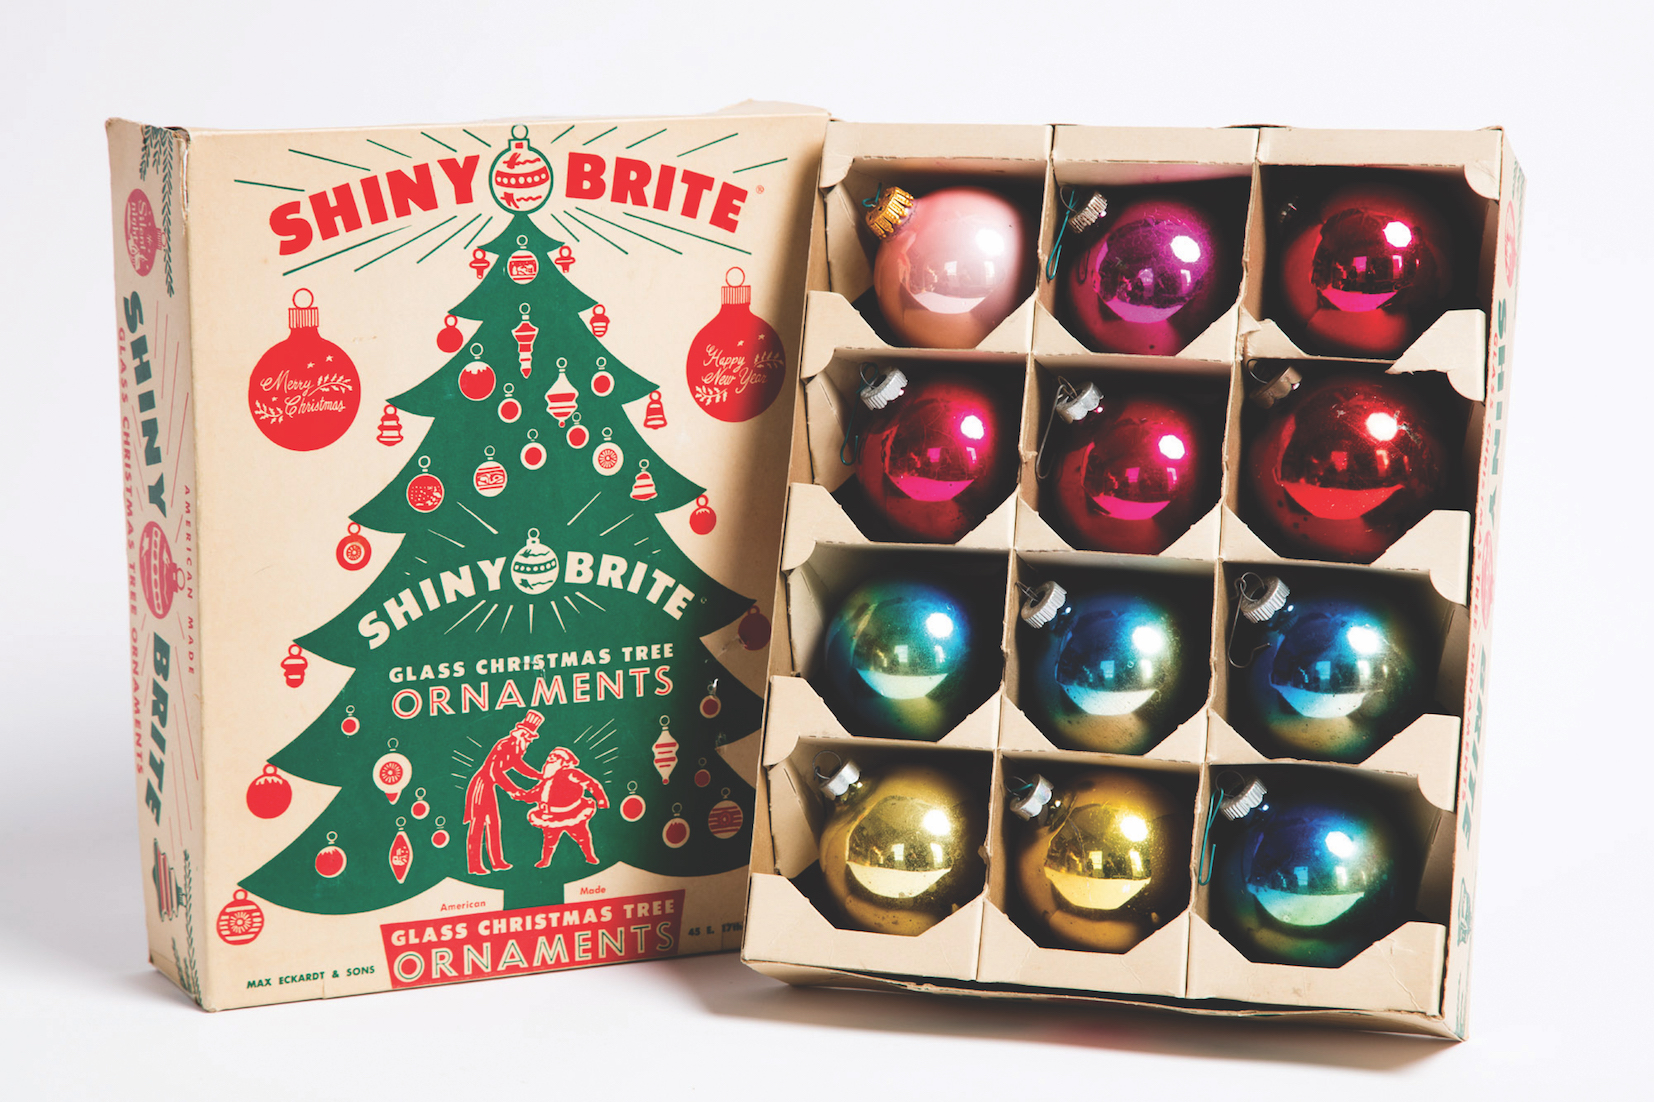 assorted shiny brite ornaments from the 1950s and 1960s shown in a box from the - Christmas Tree In A Box